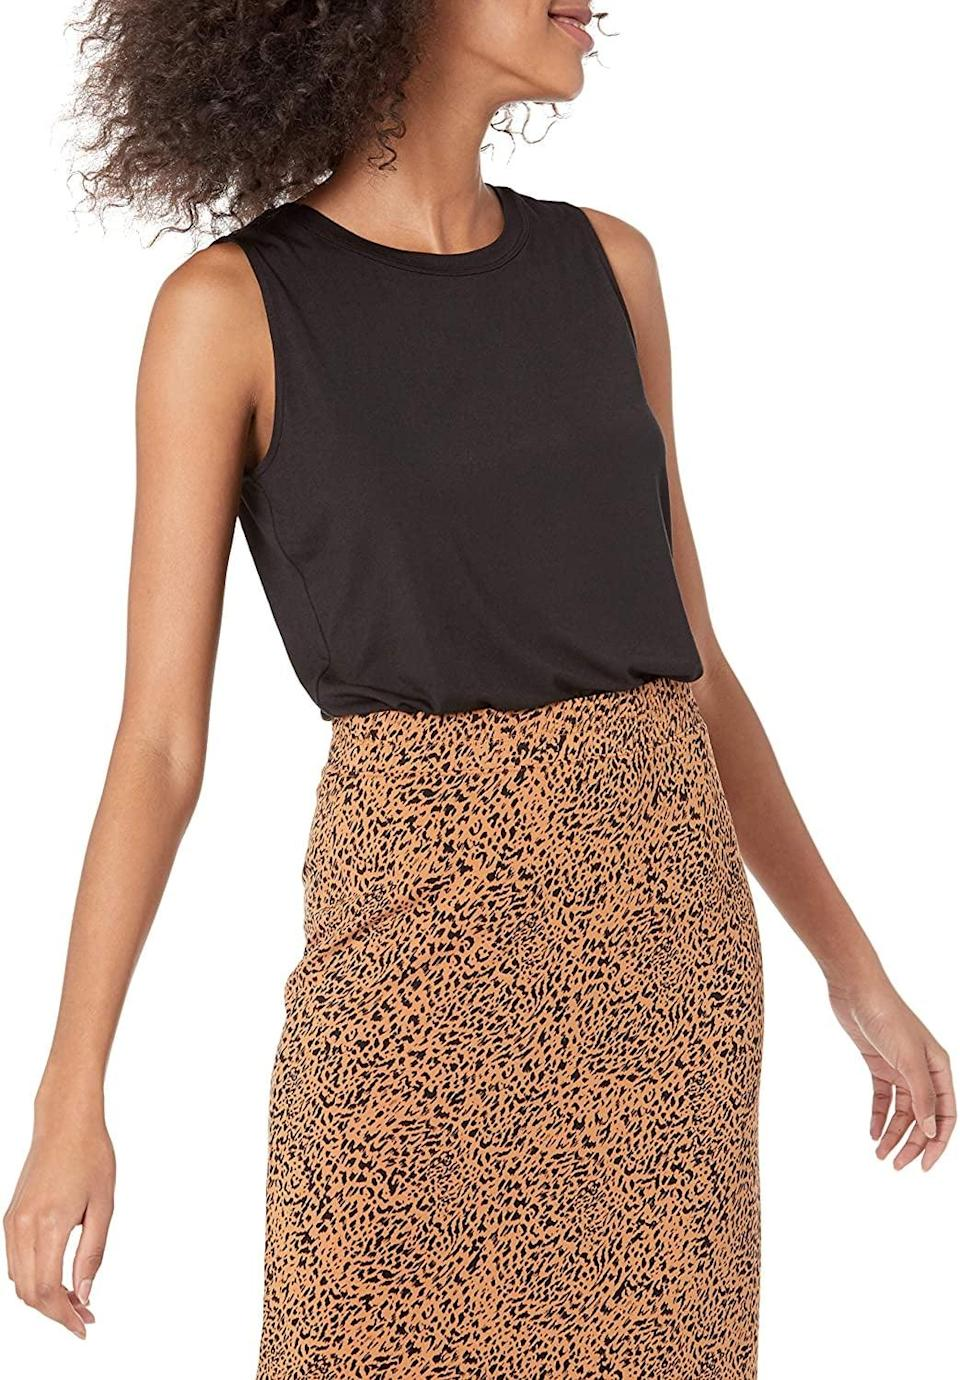 <p>On days when getting dressed isn't a priority, this <span>Amazon Essentials Sleeveless Tank</span> ($21) will keep you comfortable and put-together. Style it with a midi skirt, denim jeans or shorts, and you'll be ready to step out in no time.</p>